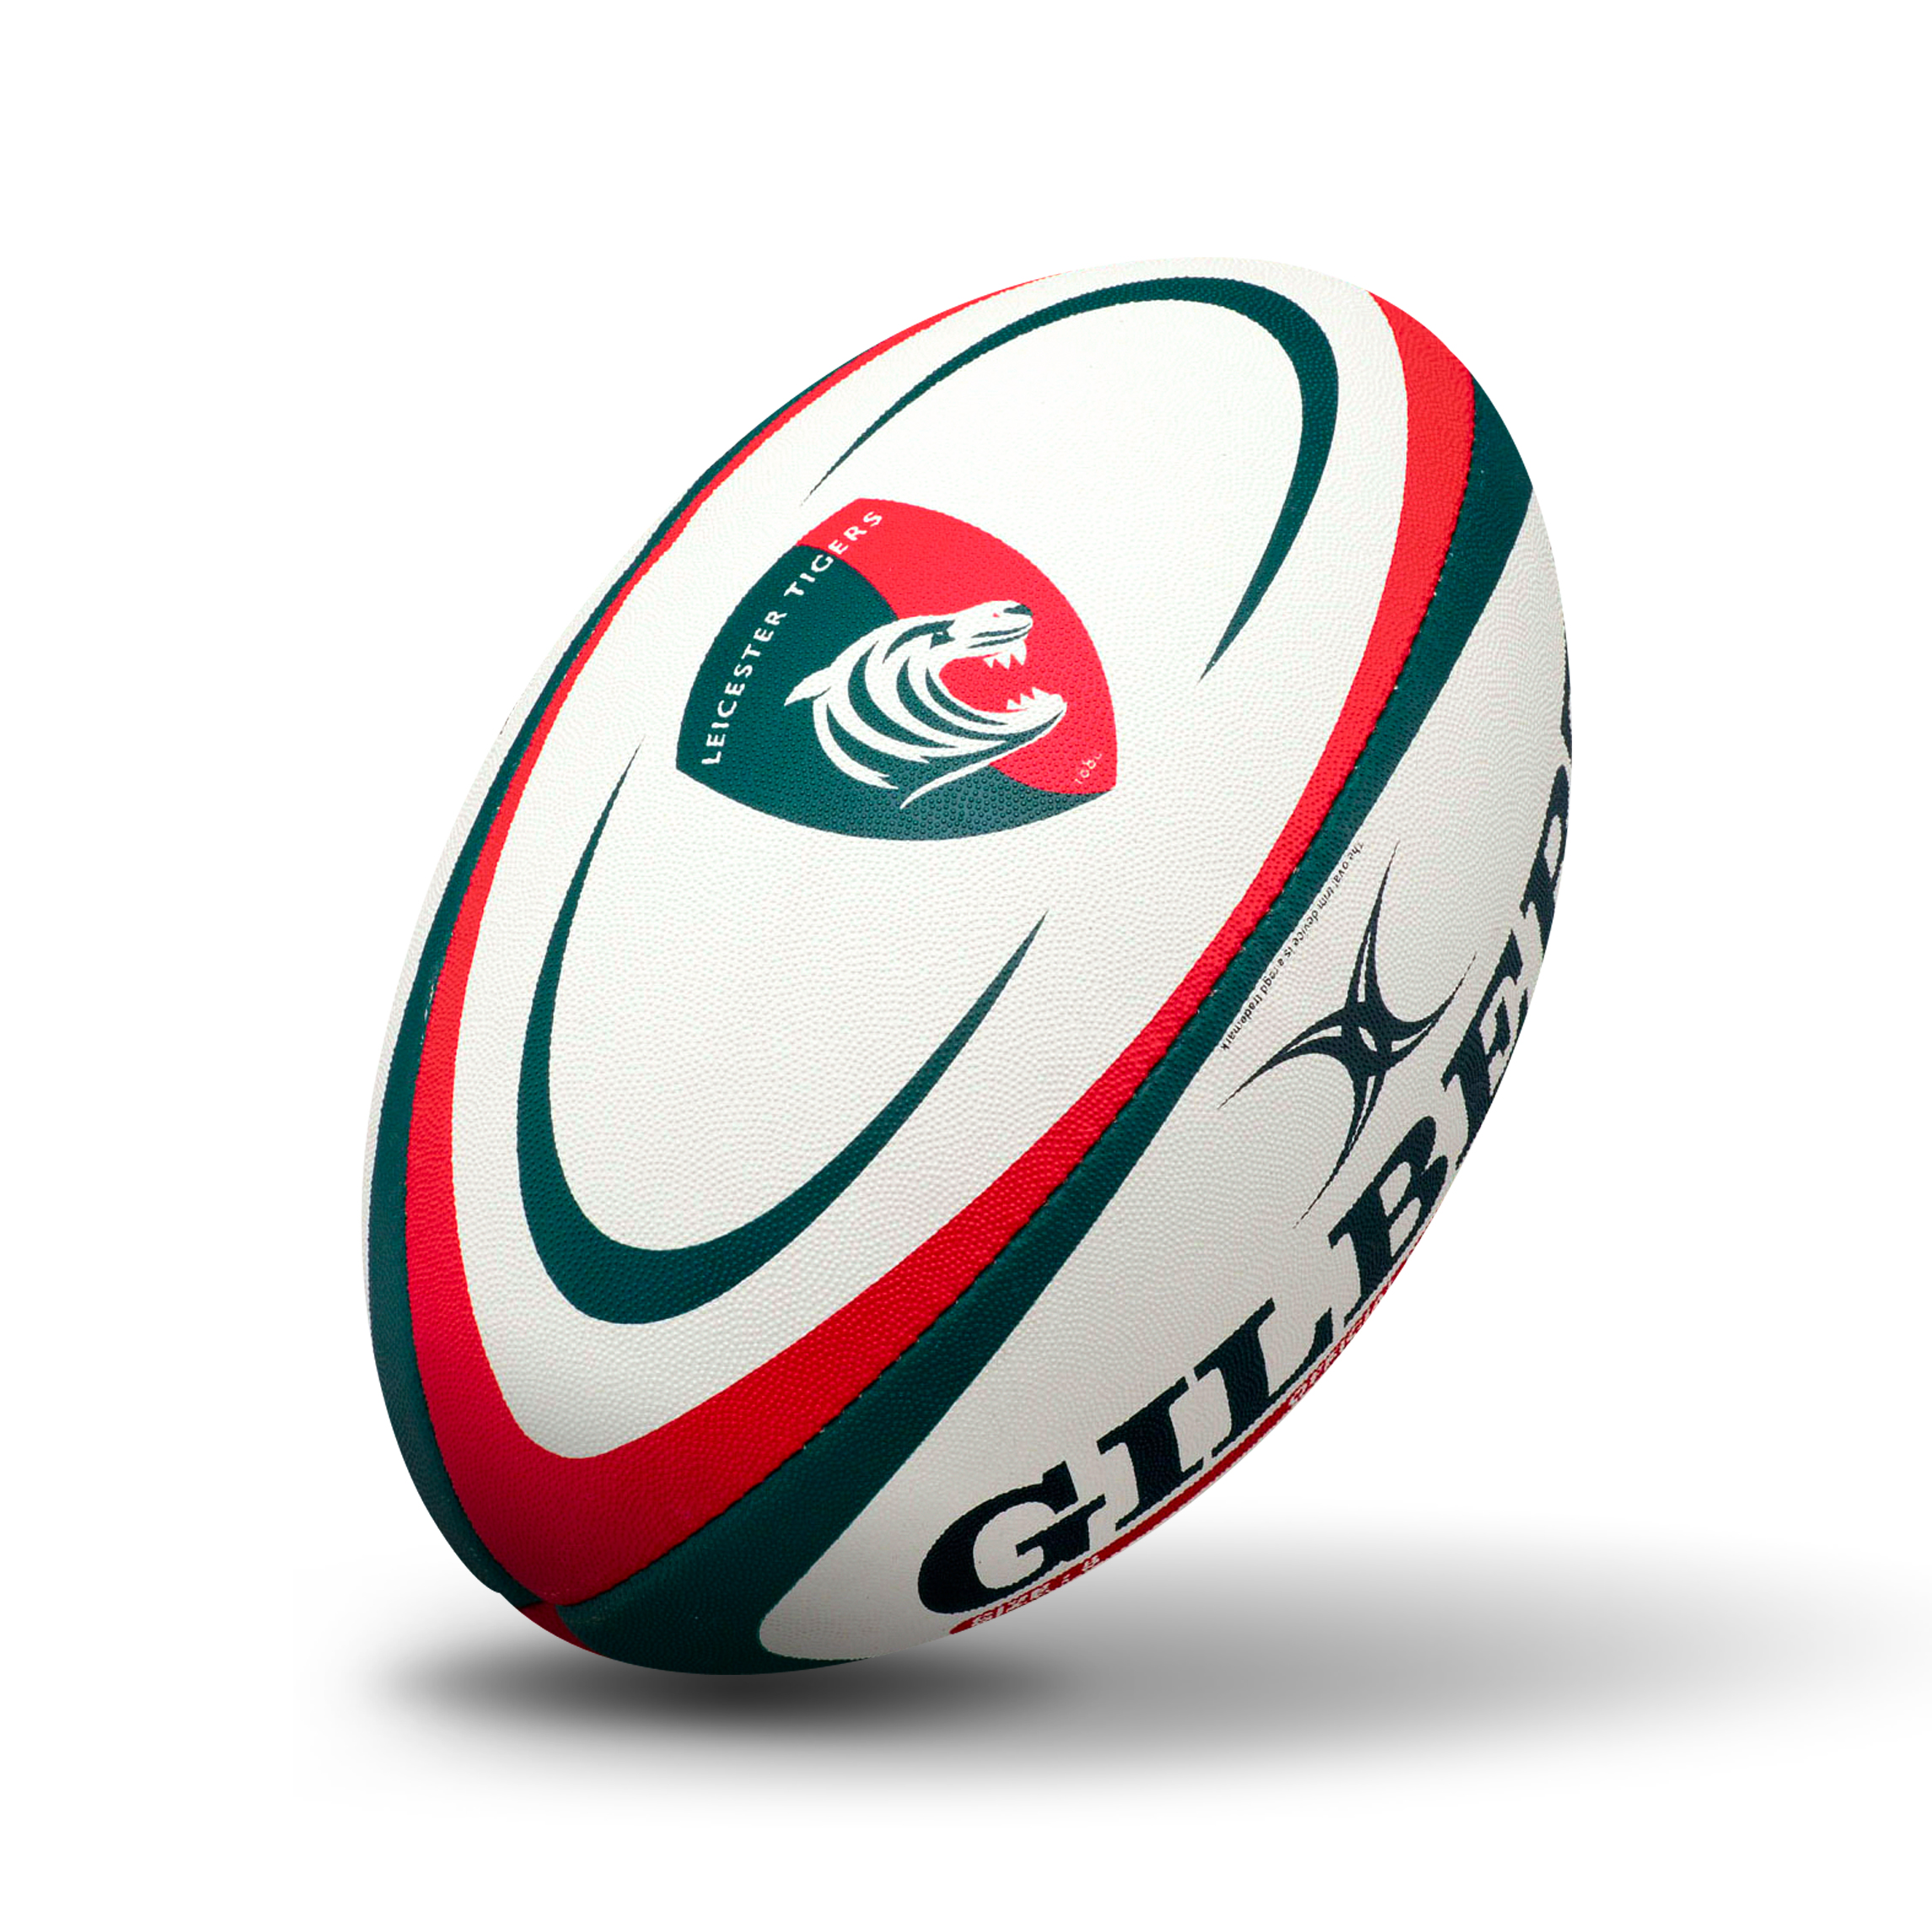 Gilbert Leicester Tigers Rugby Ball - Green/Red - Size